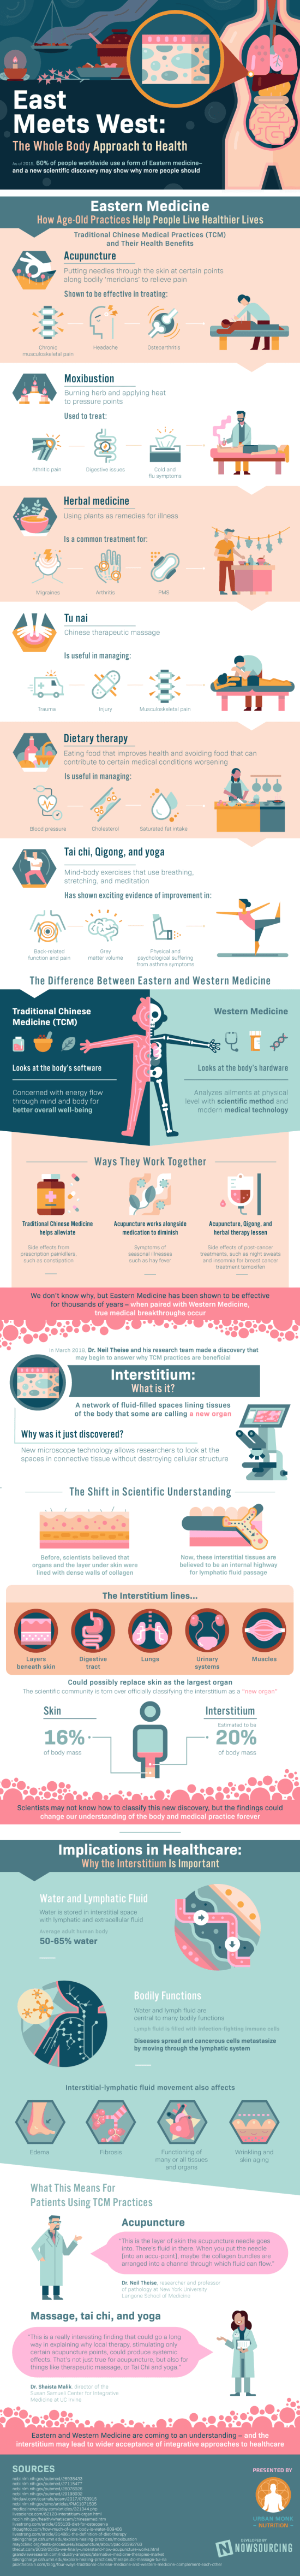 The Interstitium: Eastern Meets Western Medicine? [Infographic] 1